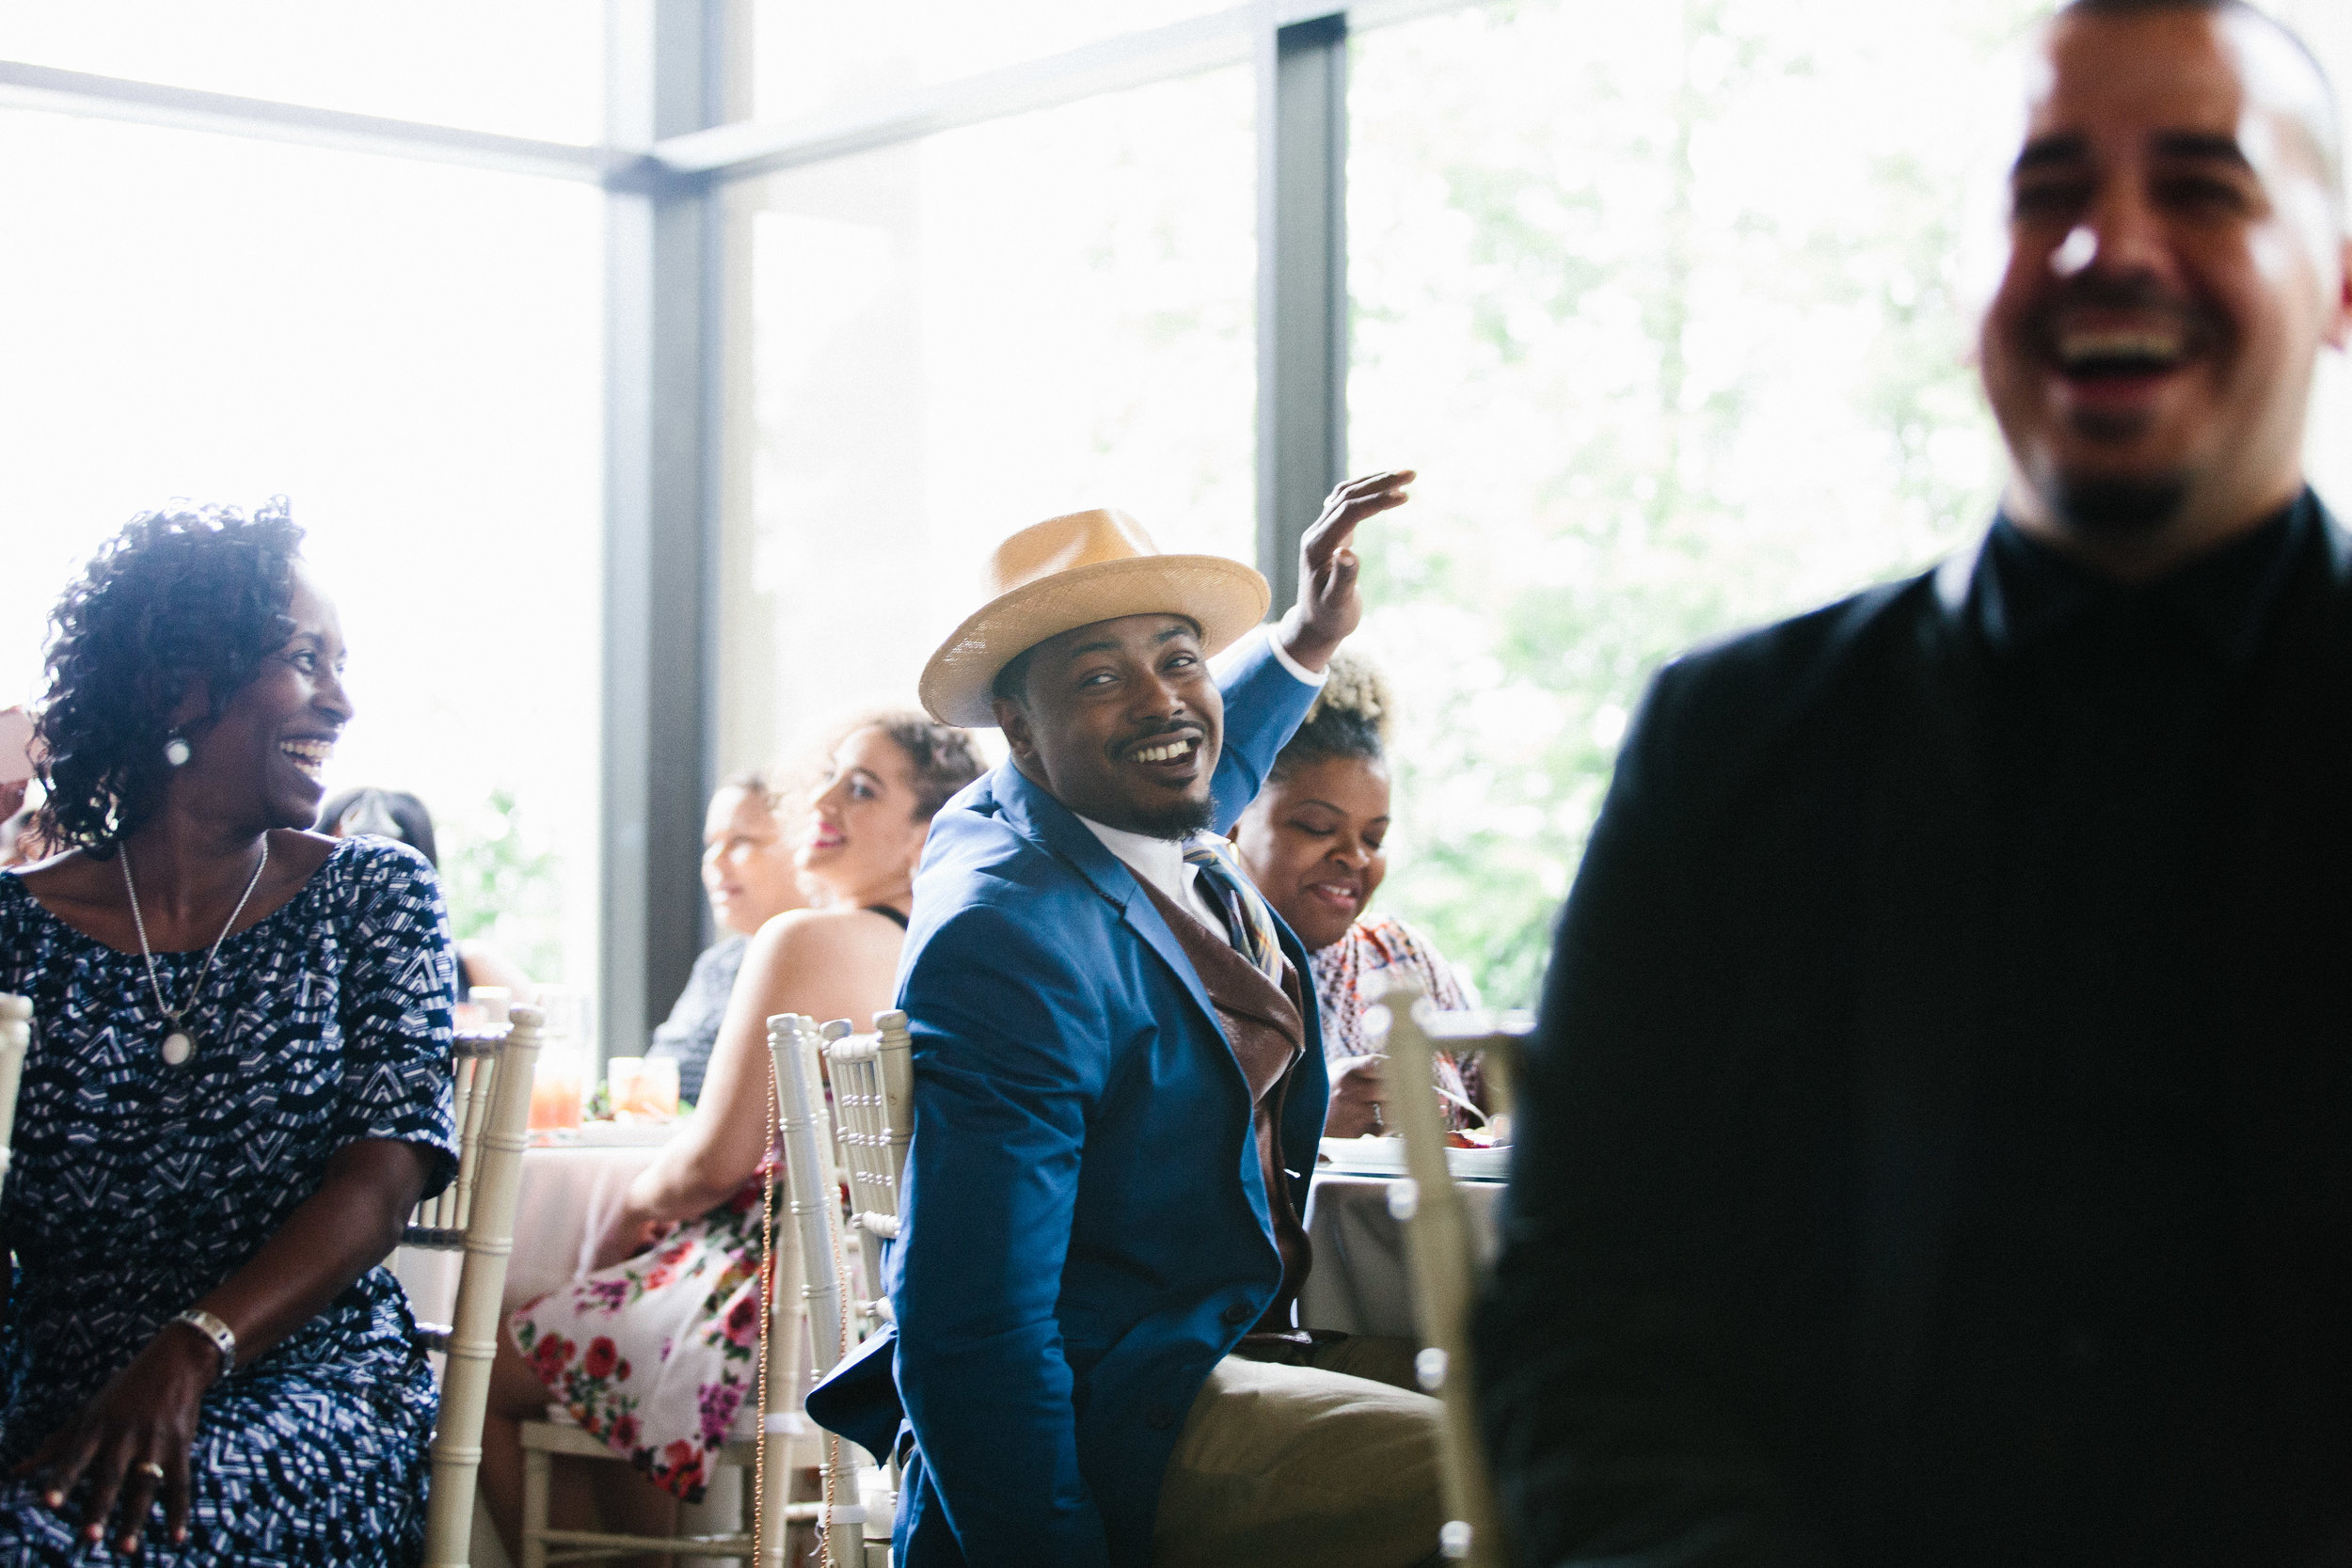 the_atrium_wedding_atlanta_norcross_lifestyle_photographers_lgbtq_1350.jpg